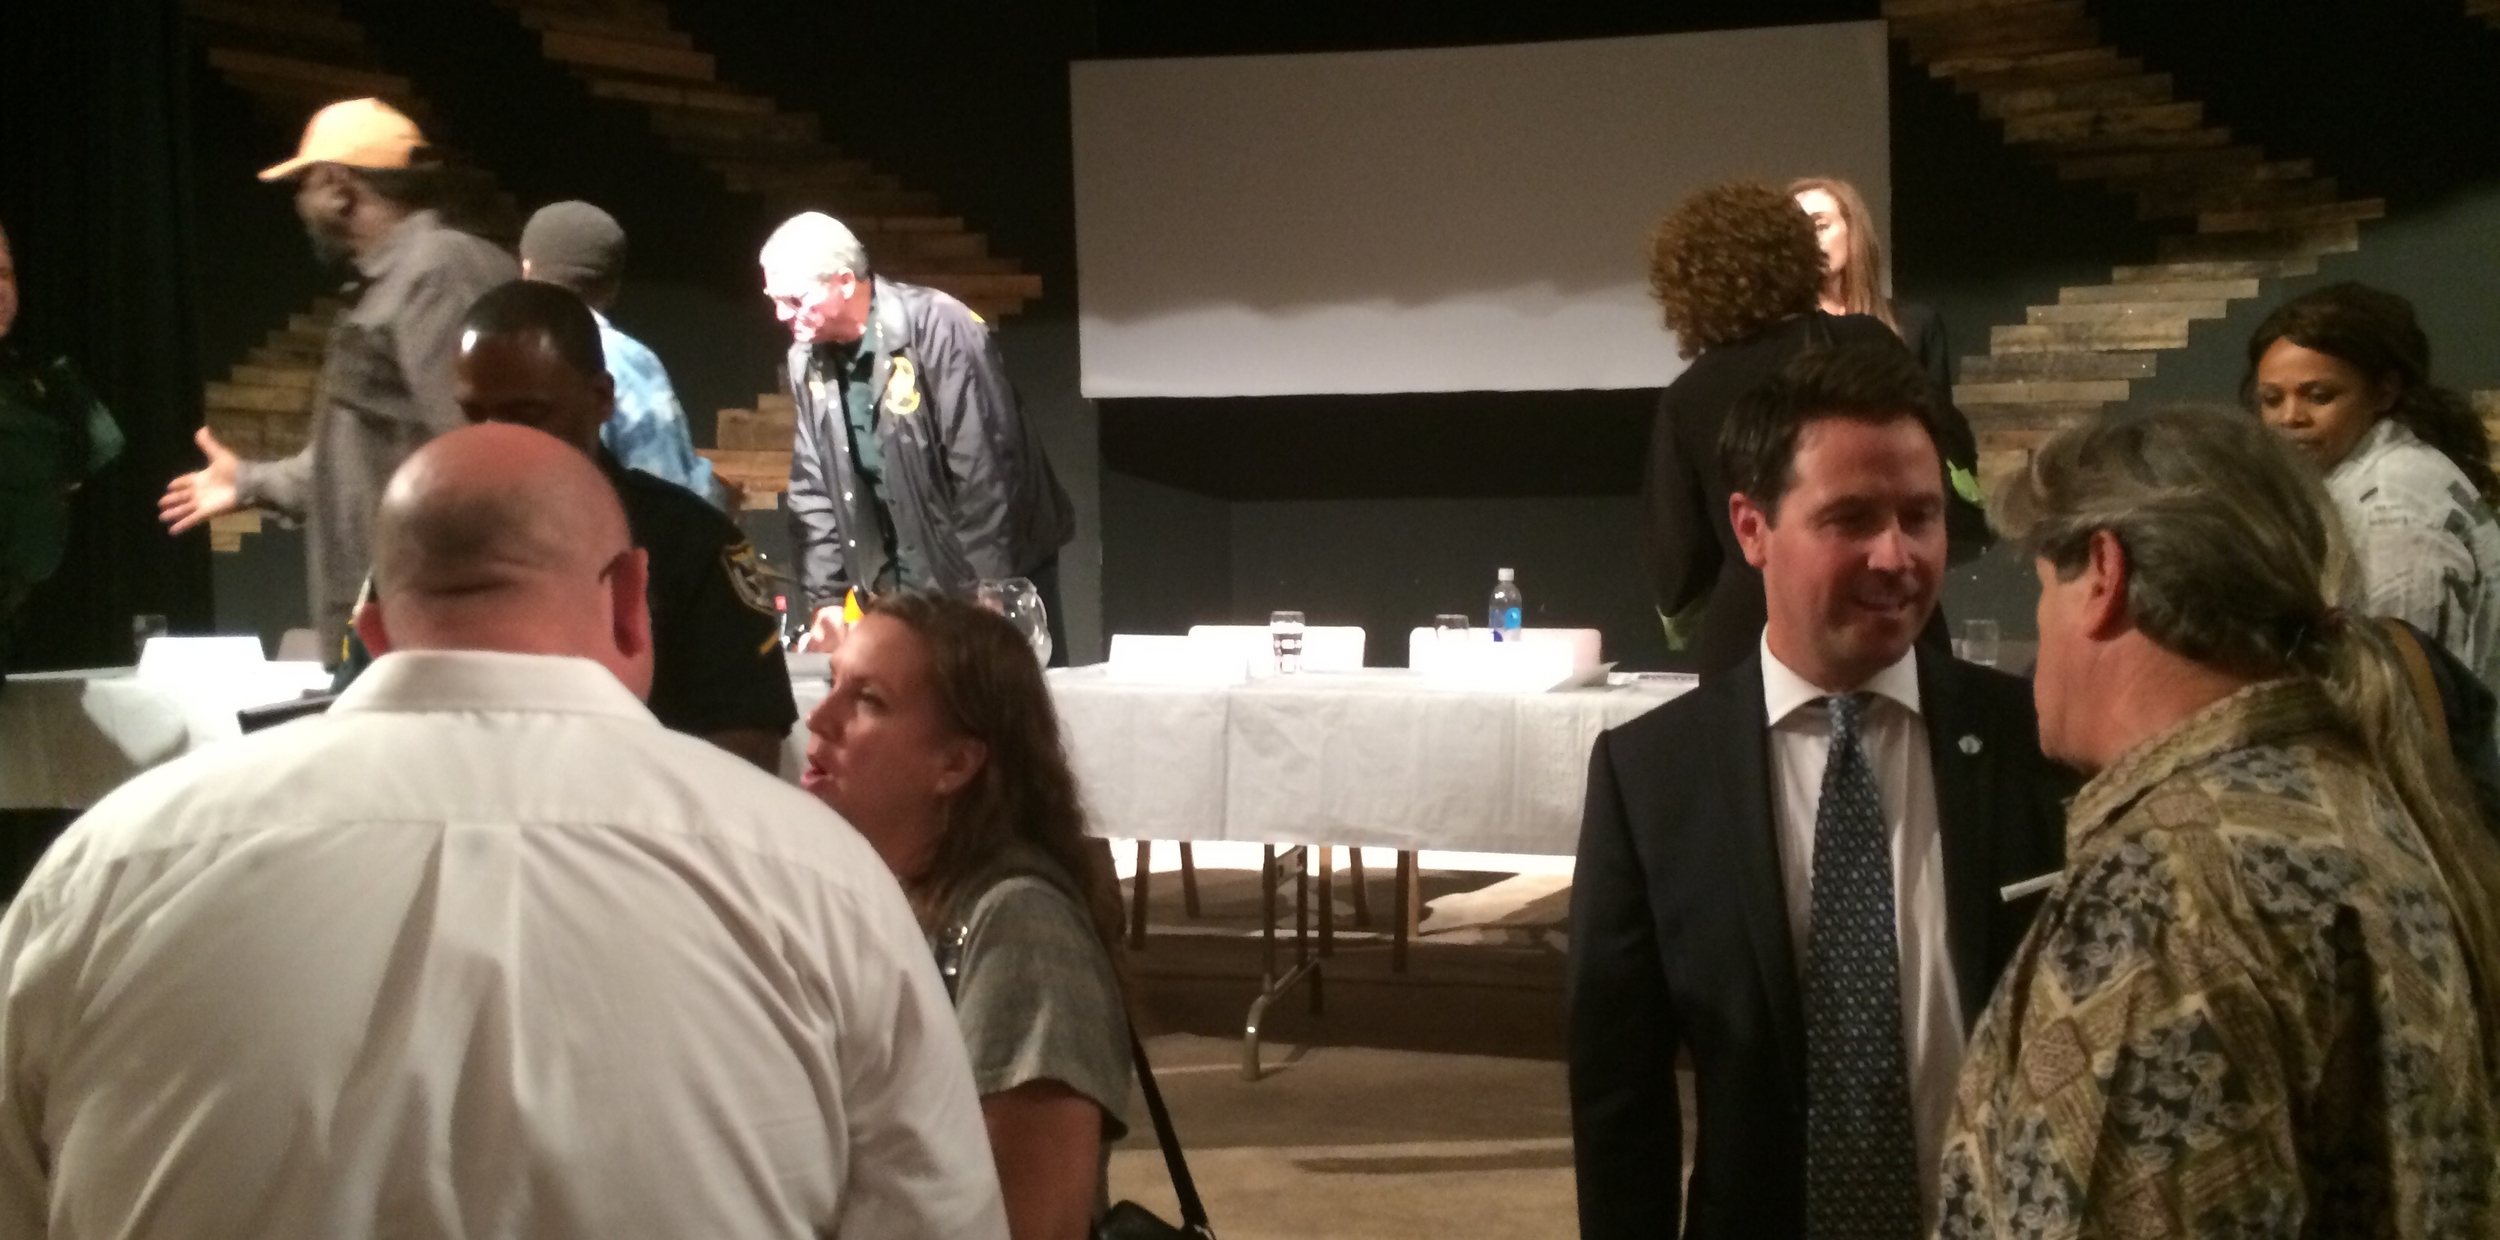 Residents lingered long after the District 3 town hall meeting ended to talk with their elected officials.